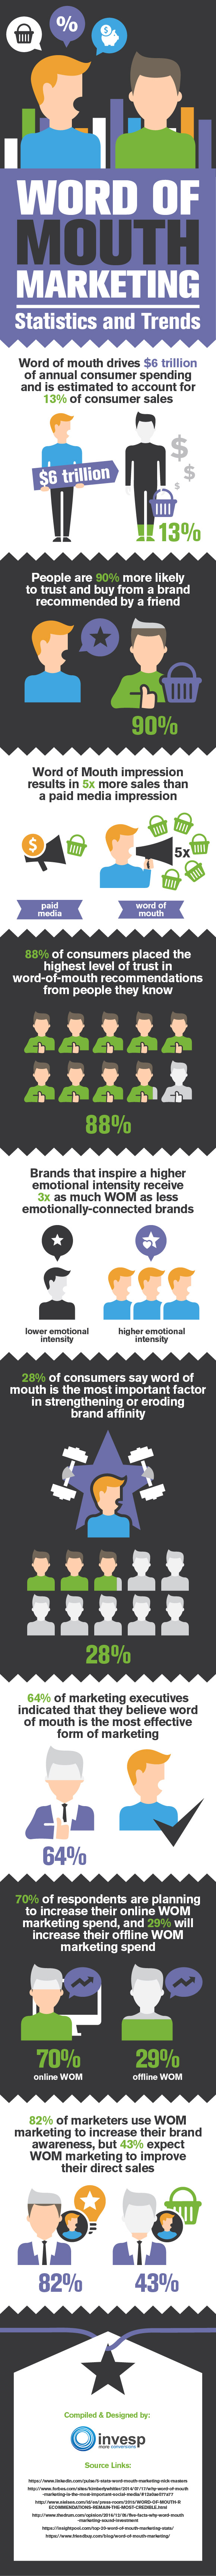 Word of Mouth Marketing - Statistics and Trends